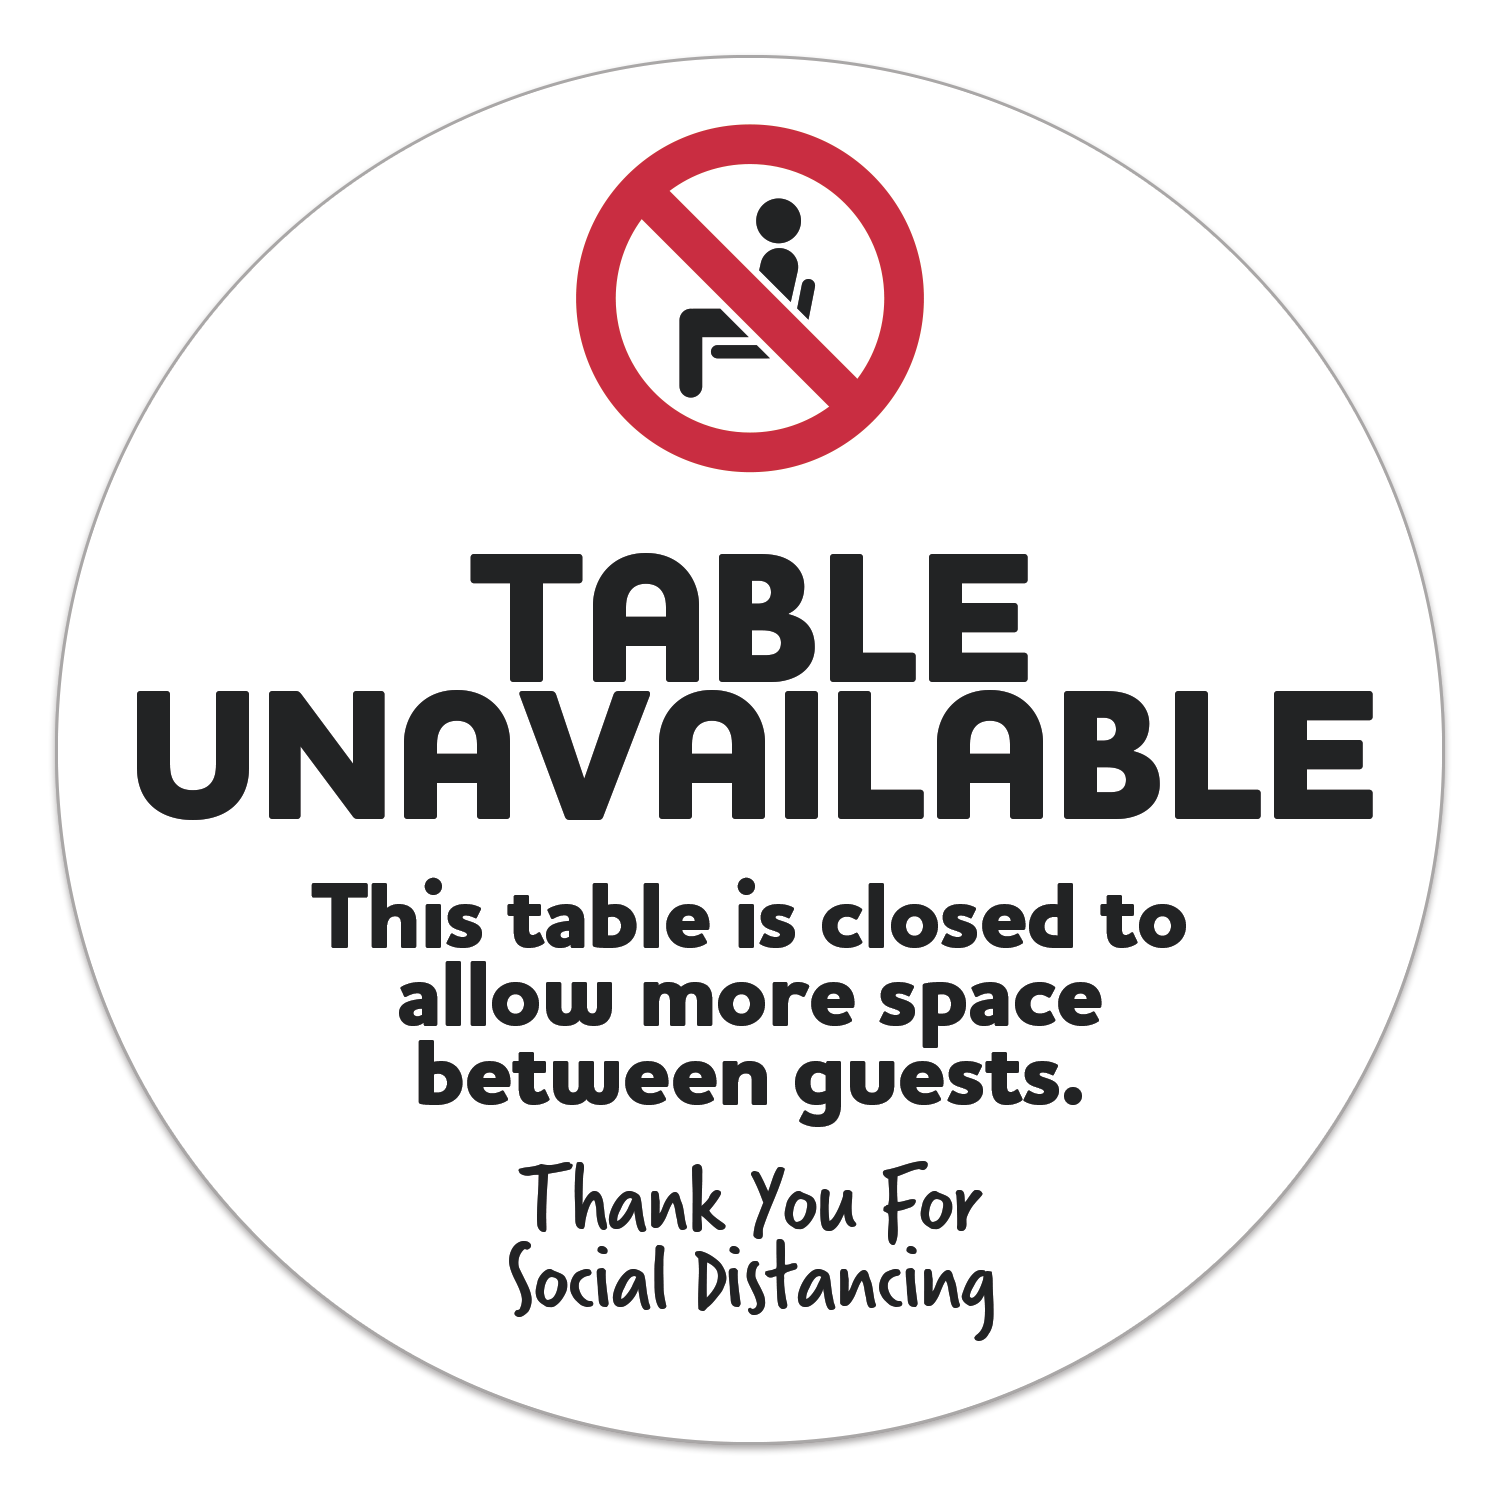 https://www.sswprinting.com/images/products_gallery_images/595701_Table-Unavailable_hi-res.png